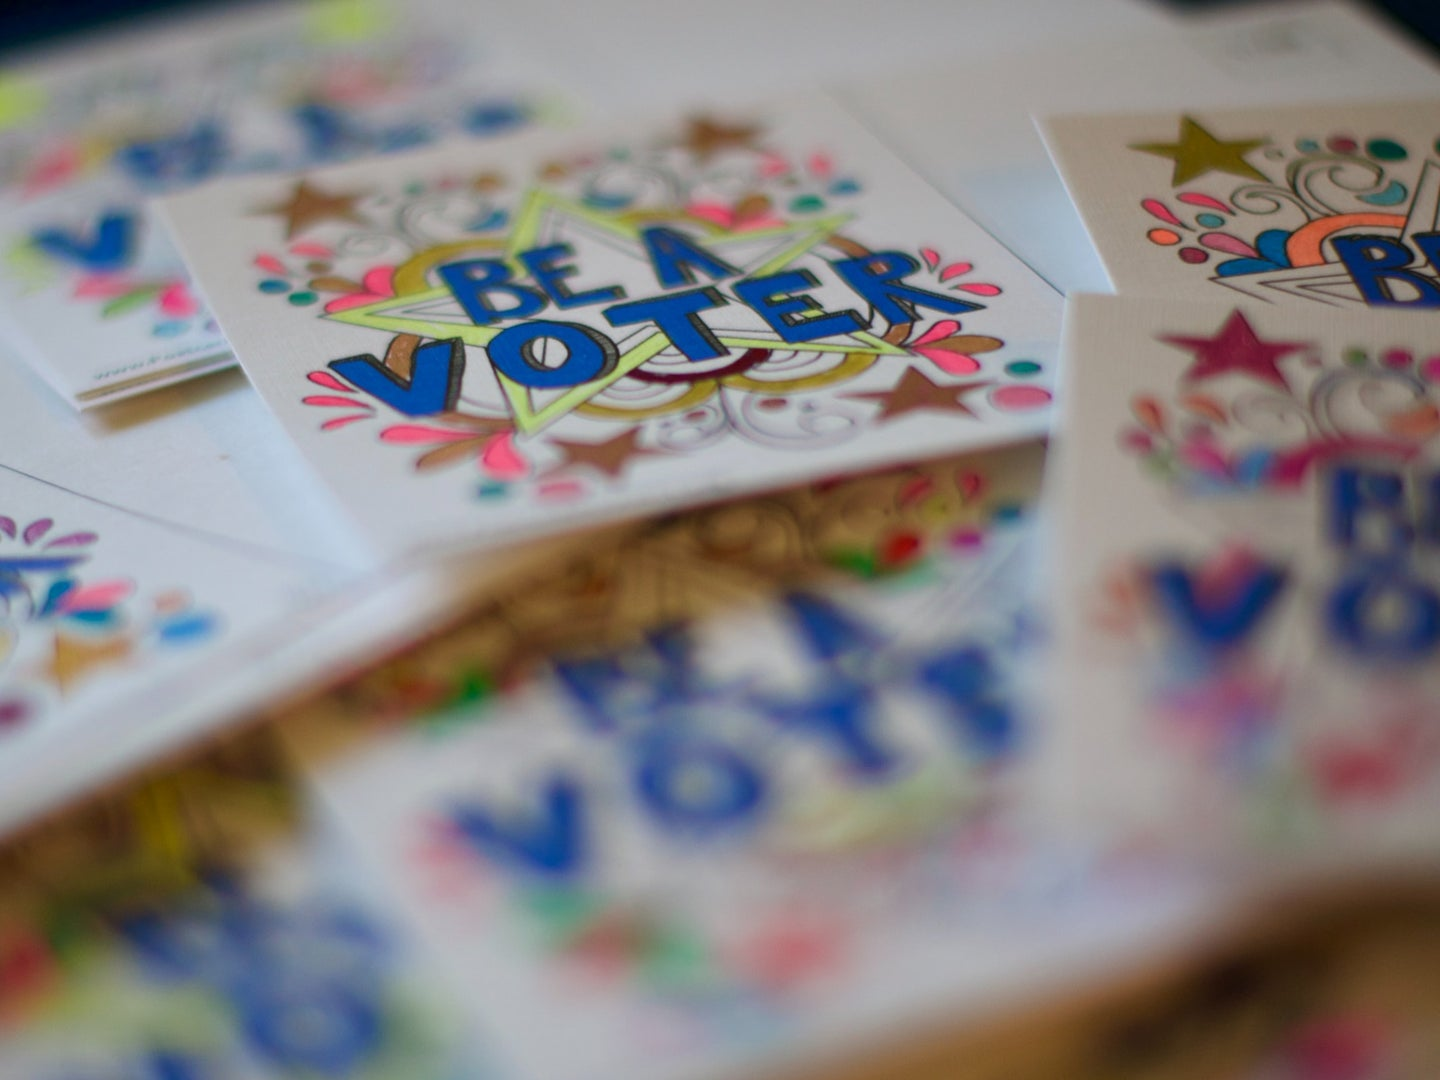 a photo of stickers or cards that say